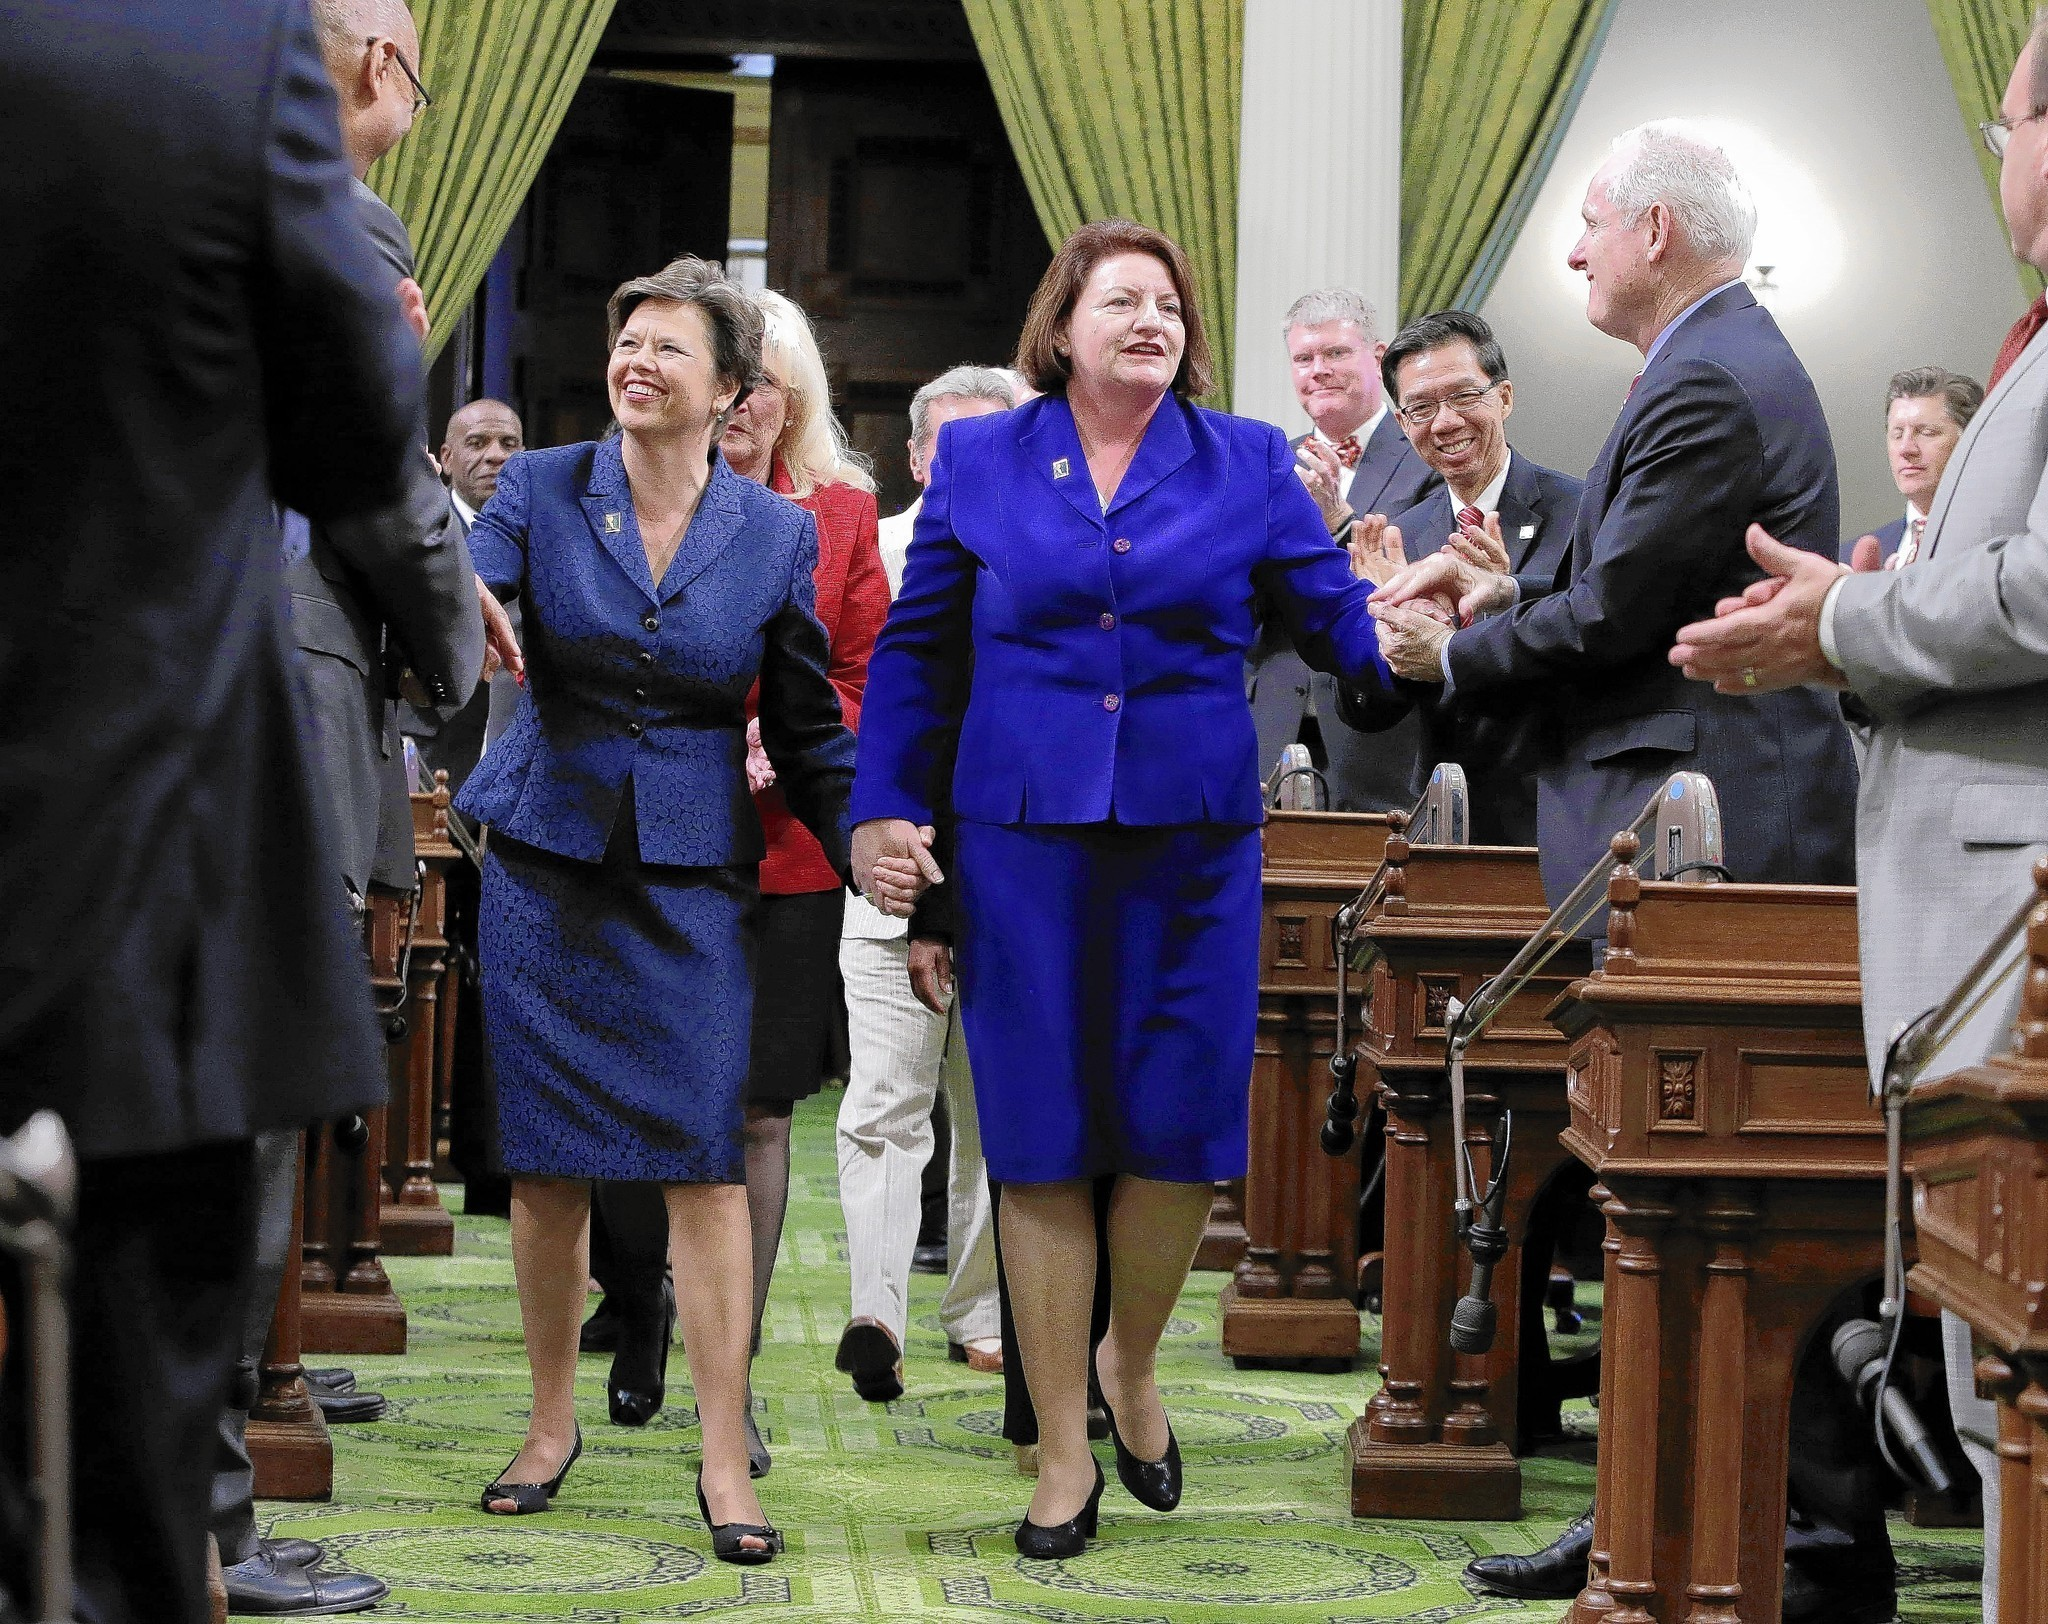 Sen. Toni Atkins to become first woman to lead California Senate